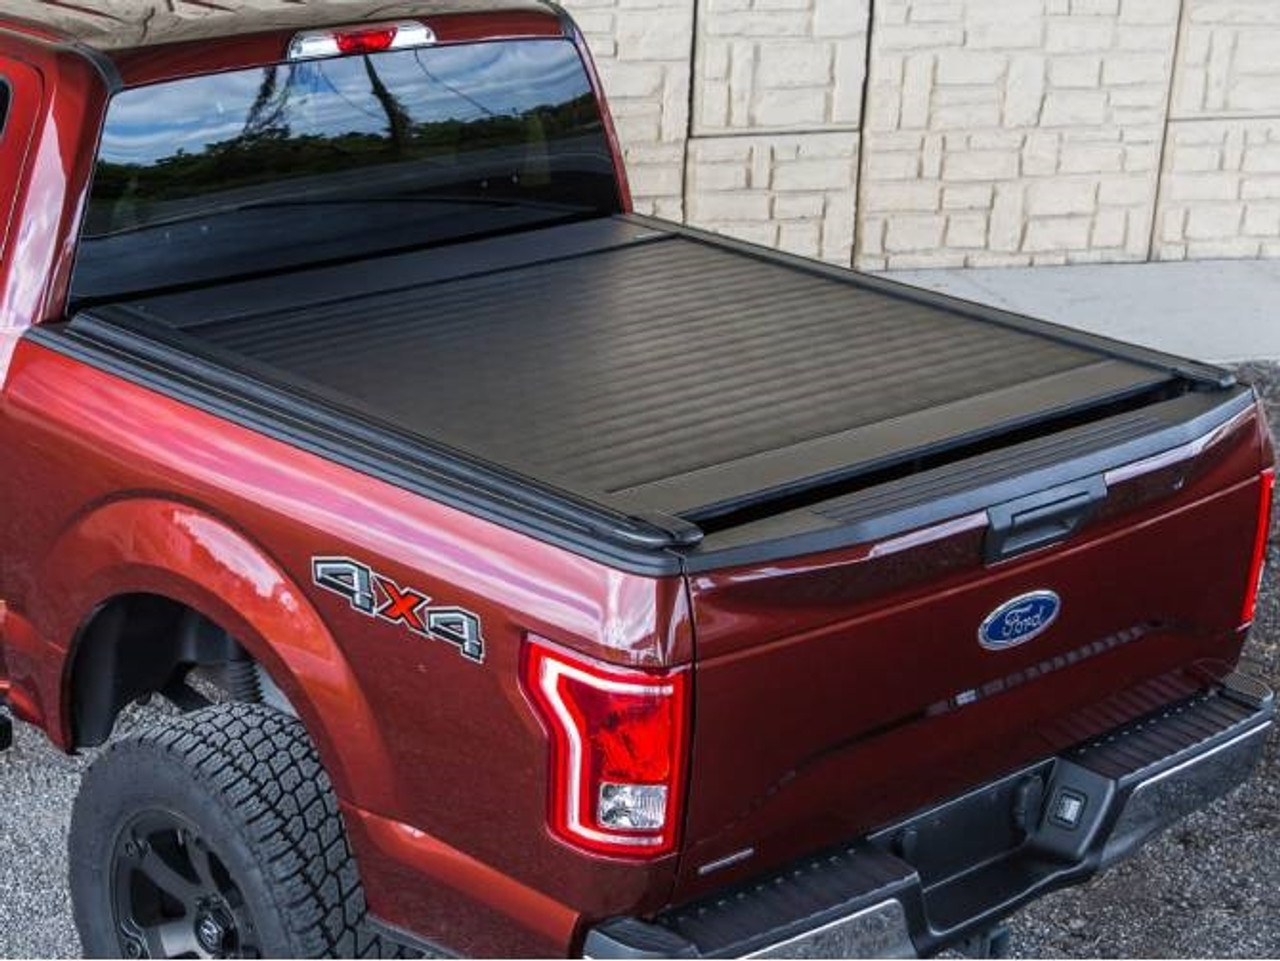 https leonardaccessories com product retractable bed covers pace edwards ultragroove tonneau cover kit